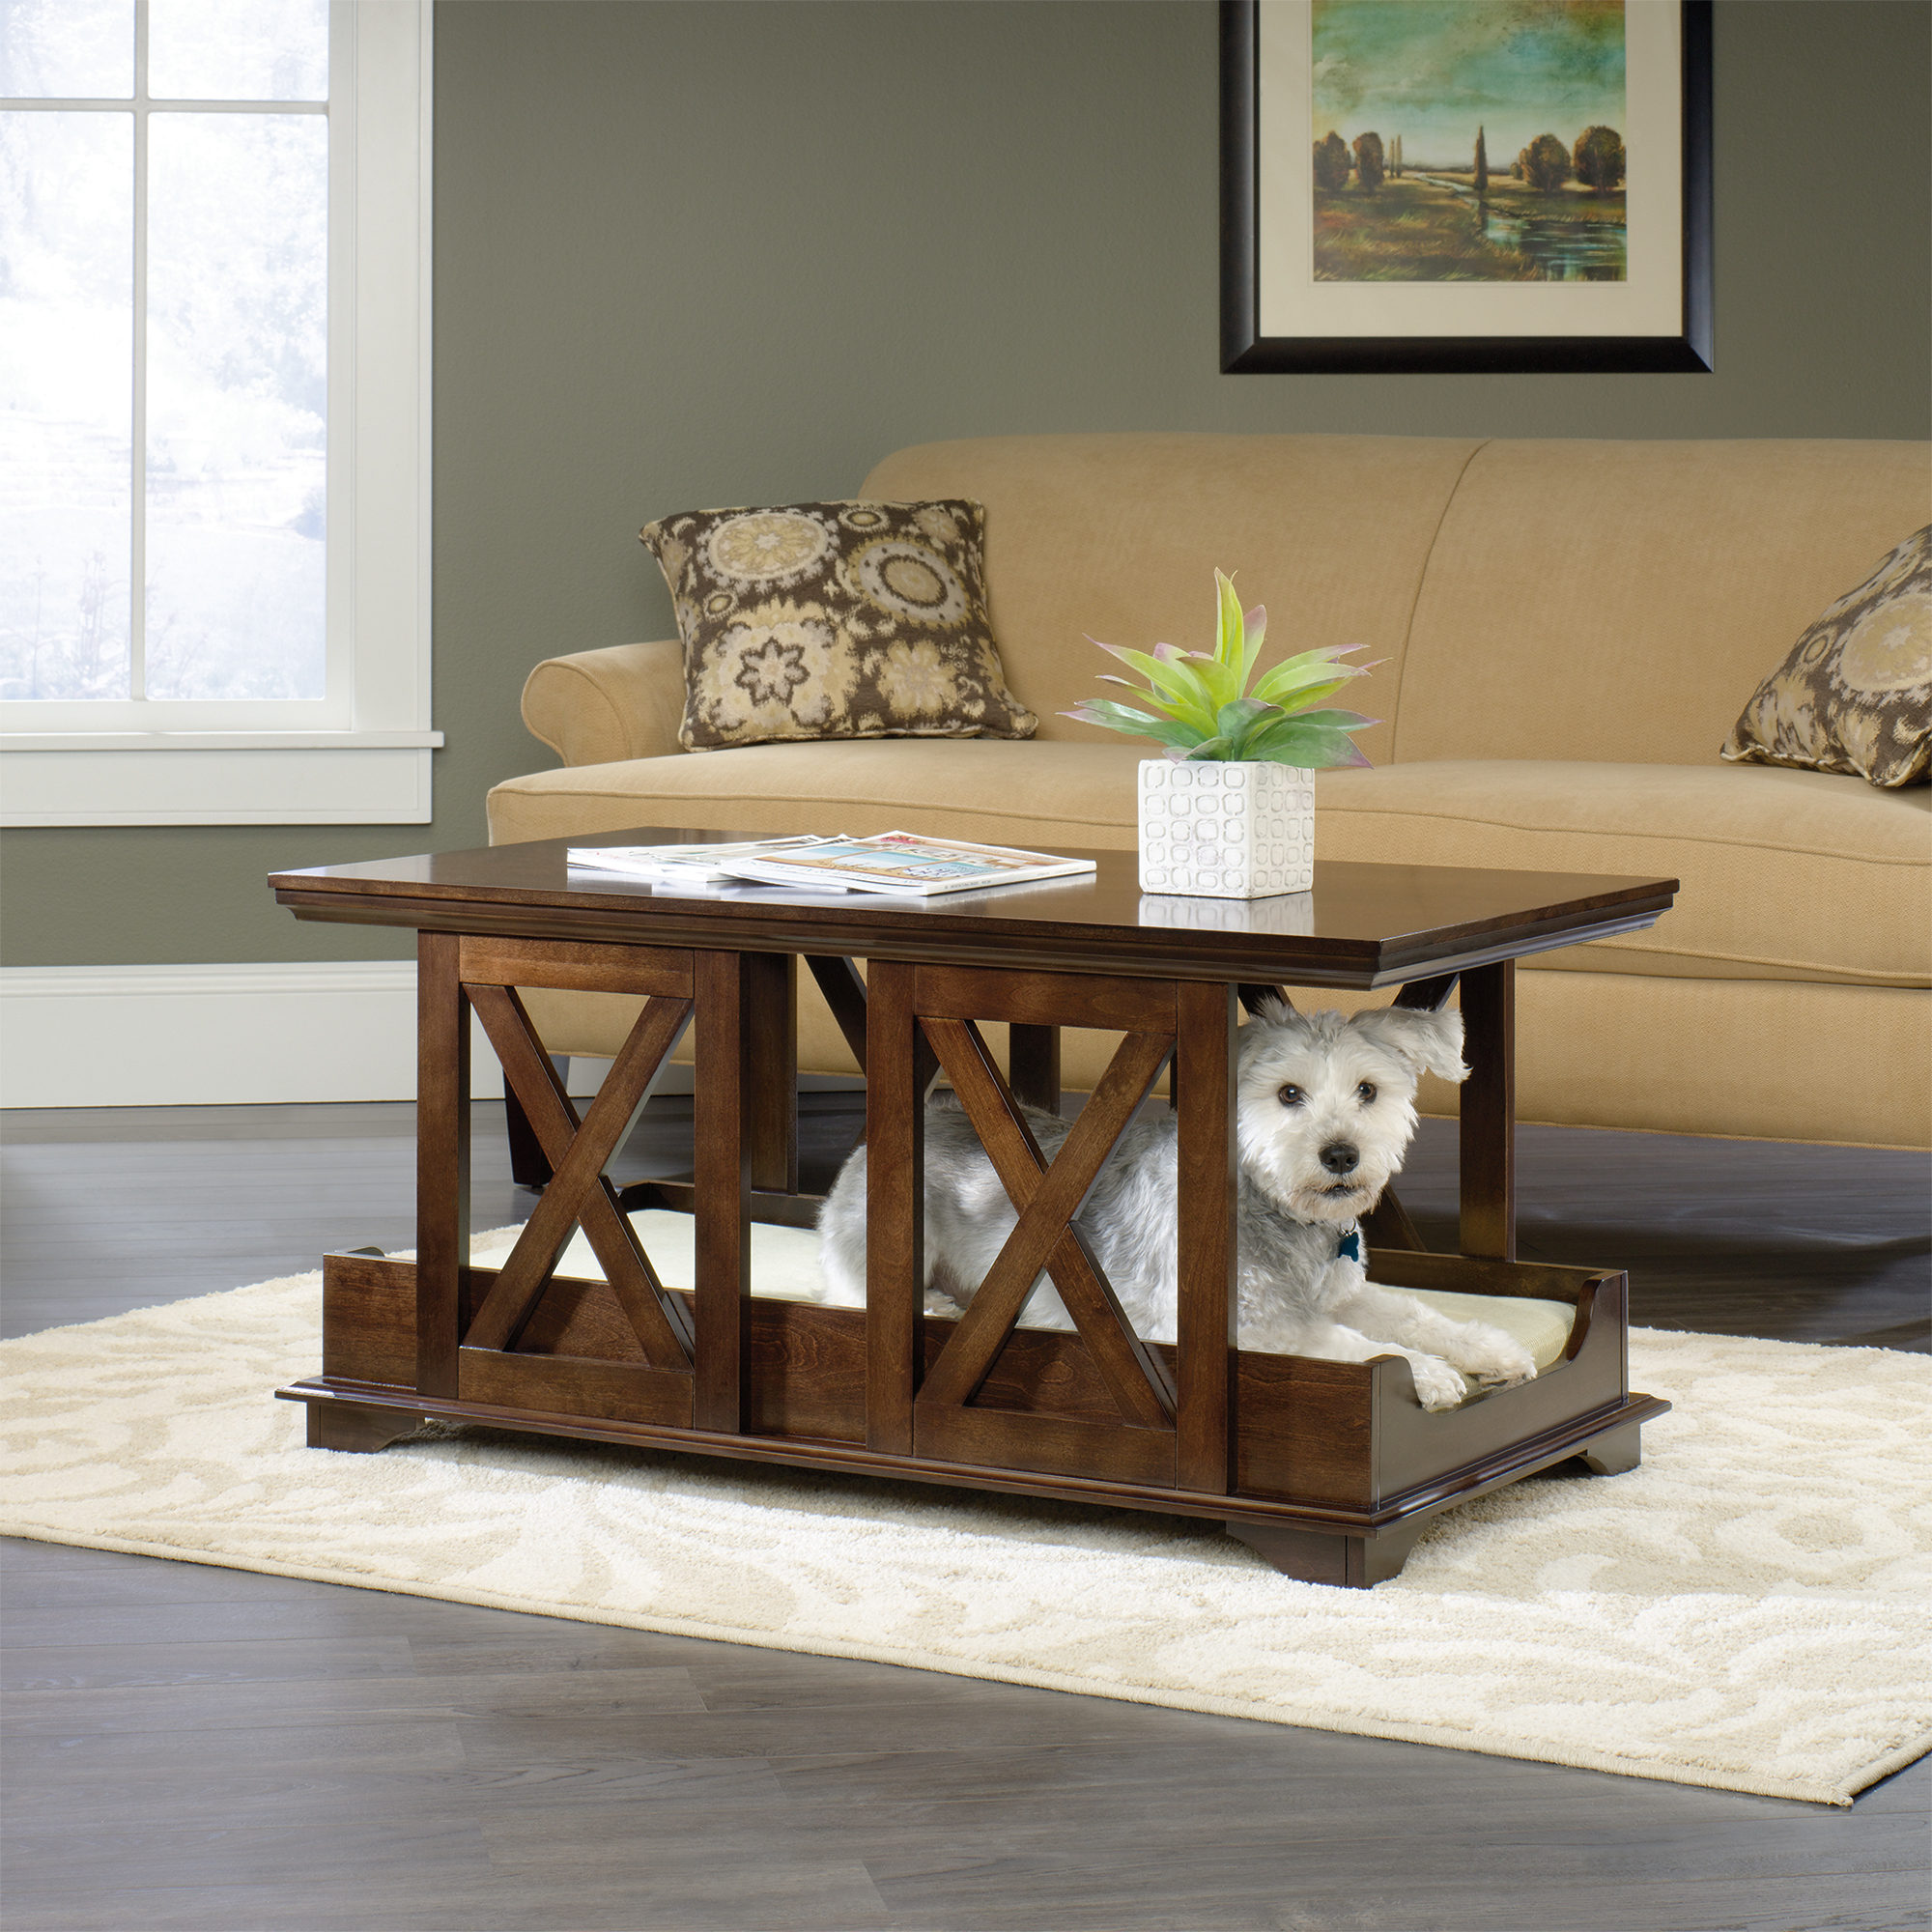 Pet Owners Delight Beautiful Dog Nooks That Add To Your Interior - Wooden dog crate coffee table